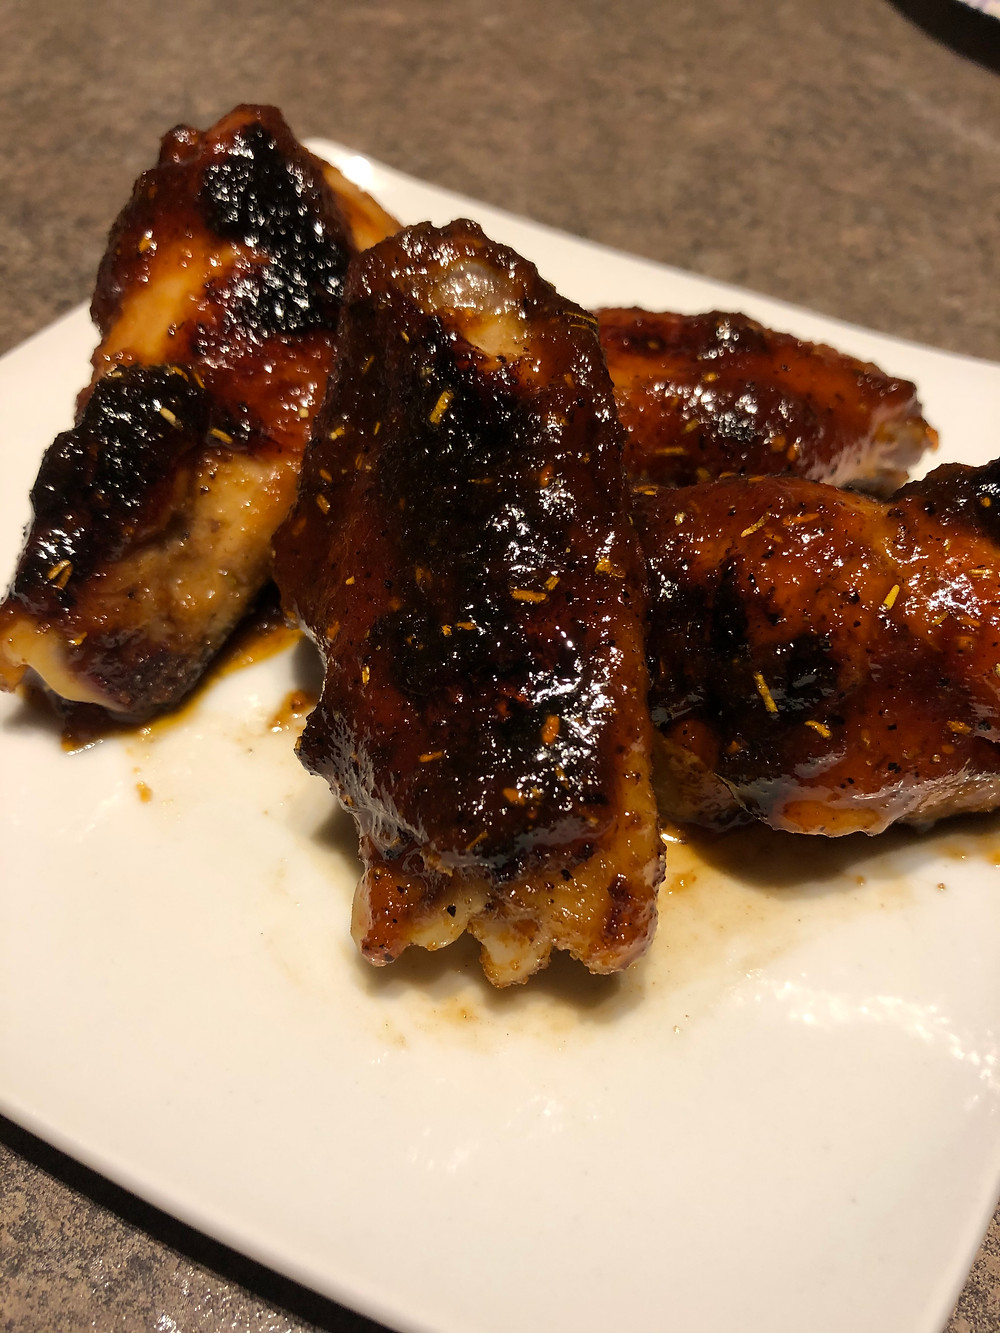 Glazed, saucy chicken wings with visible grill charring and herbs sit on a white plate, juices surrounding them.